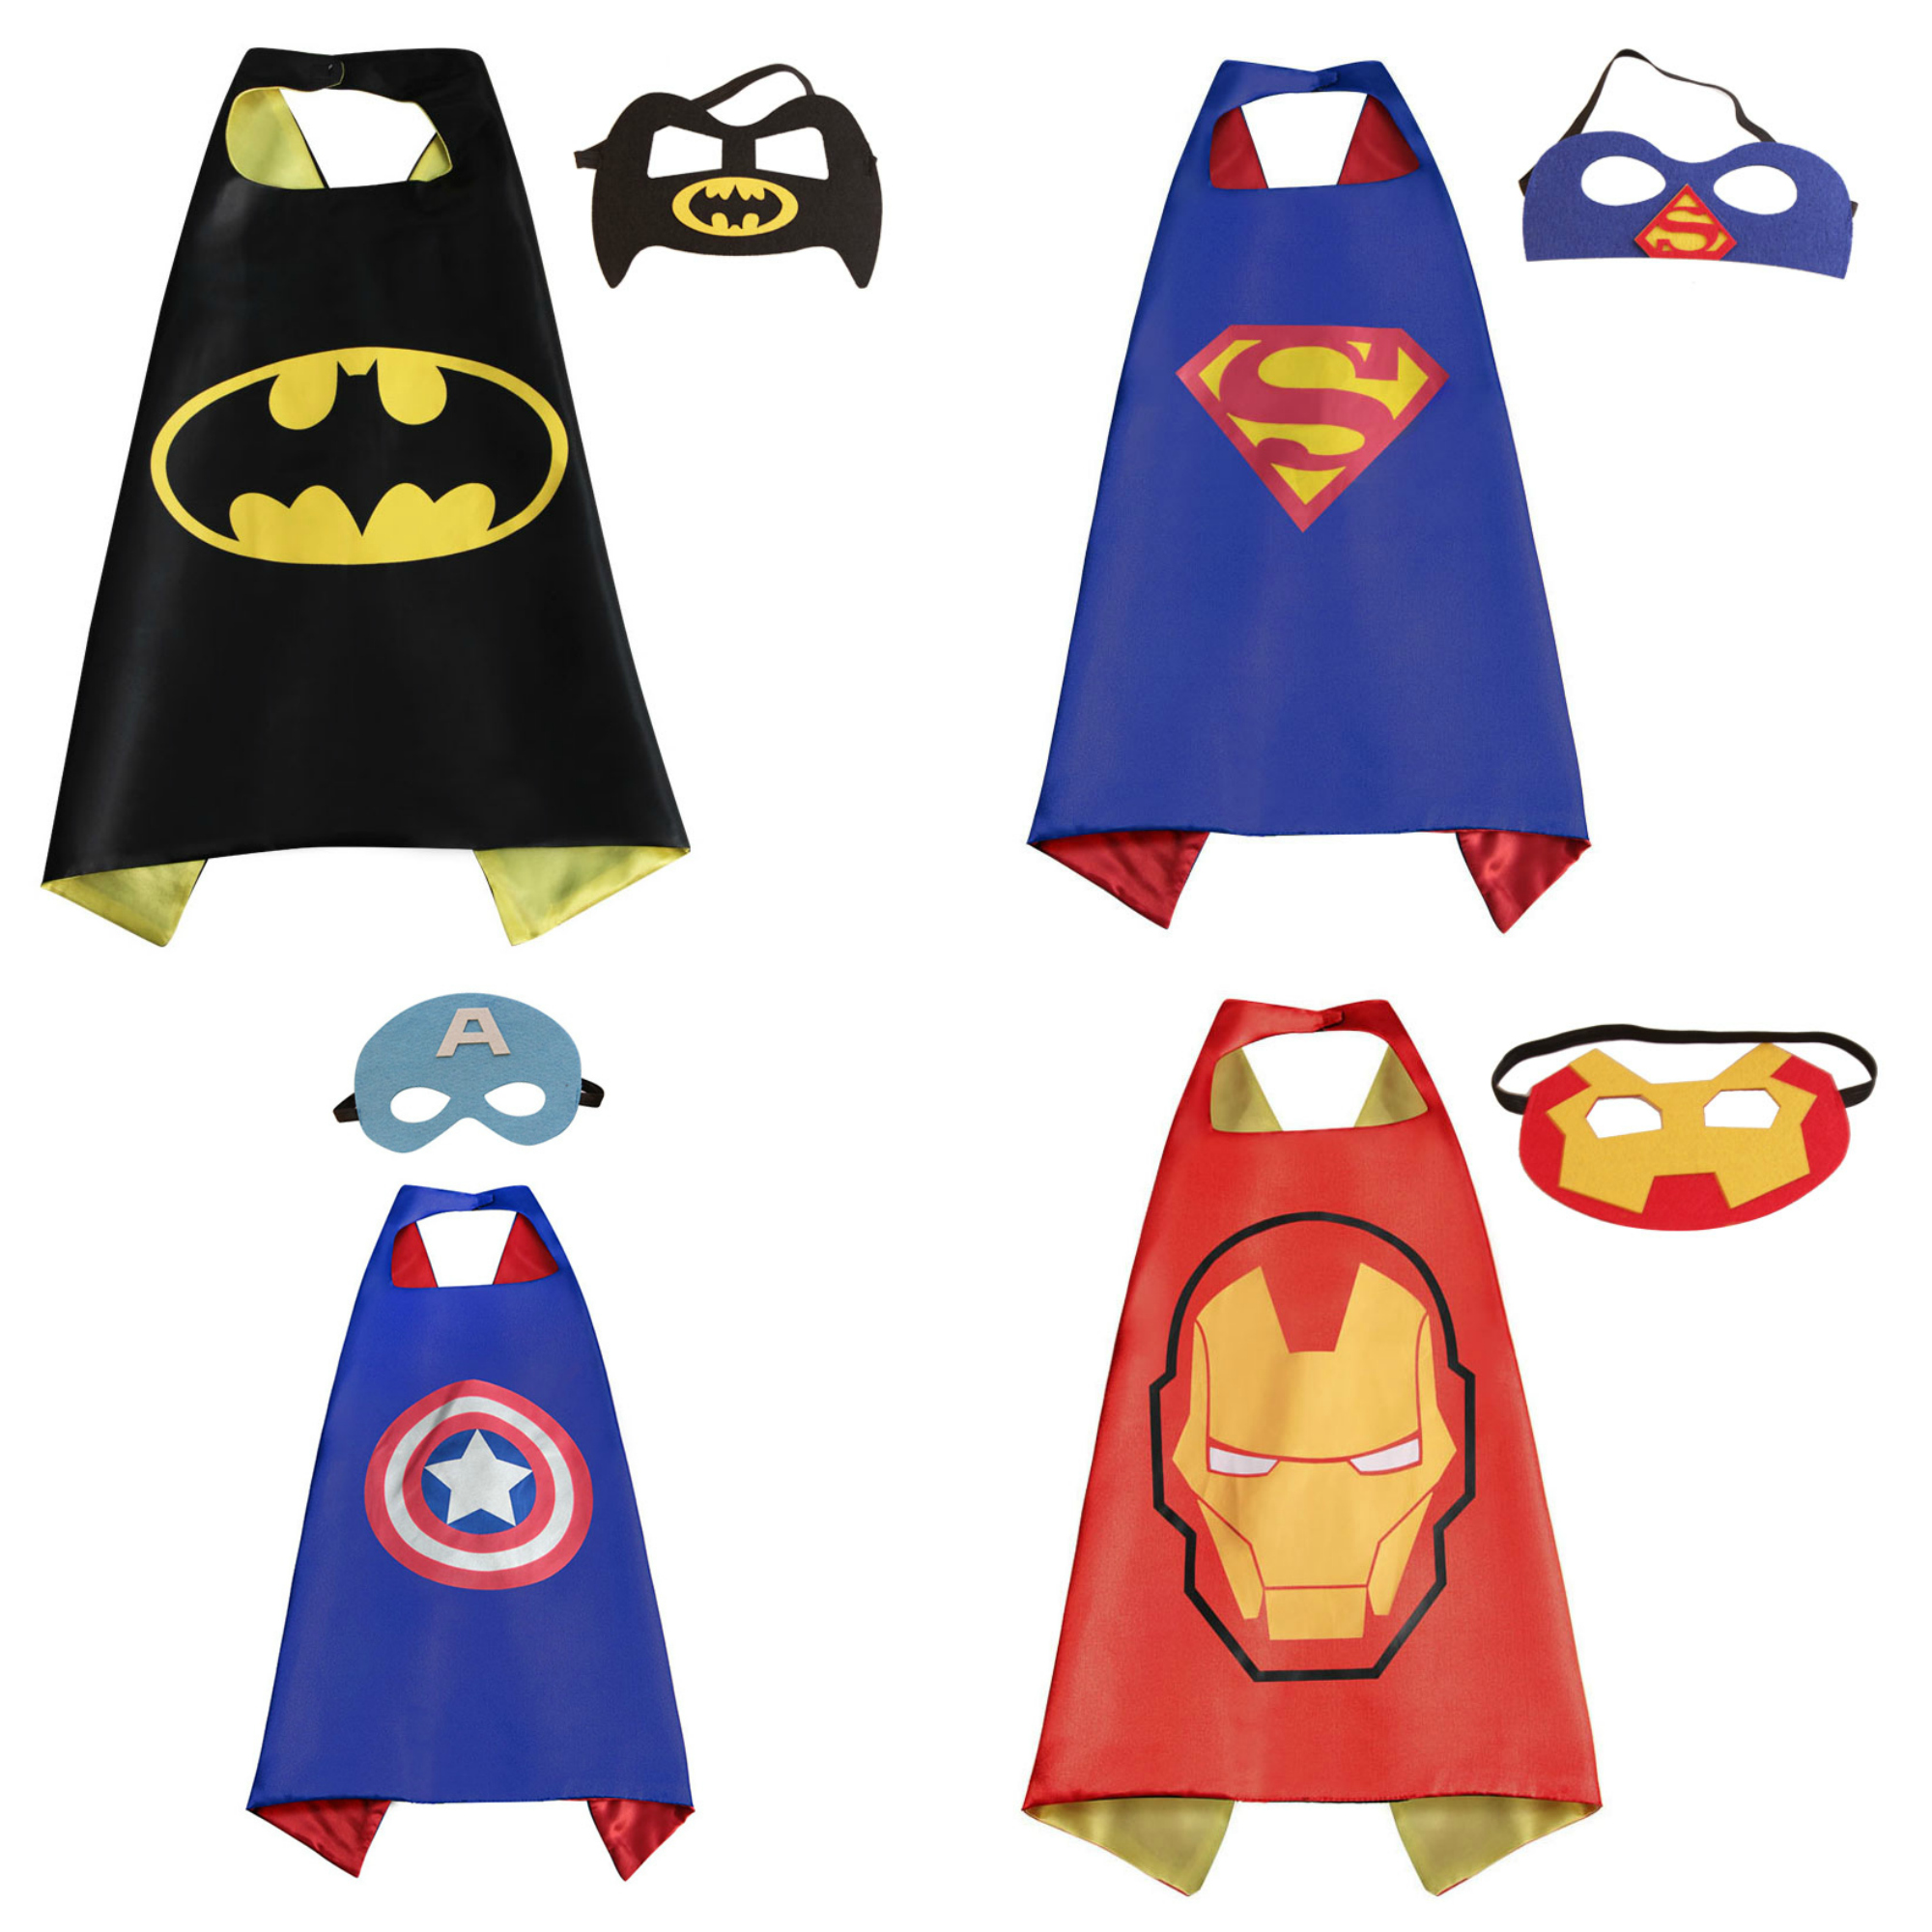 4 Set Superhero  Costumes - Capes and Masks with Gift Box by Superheroes